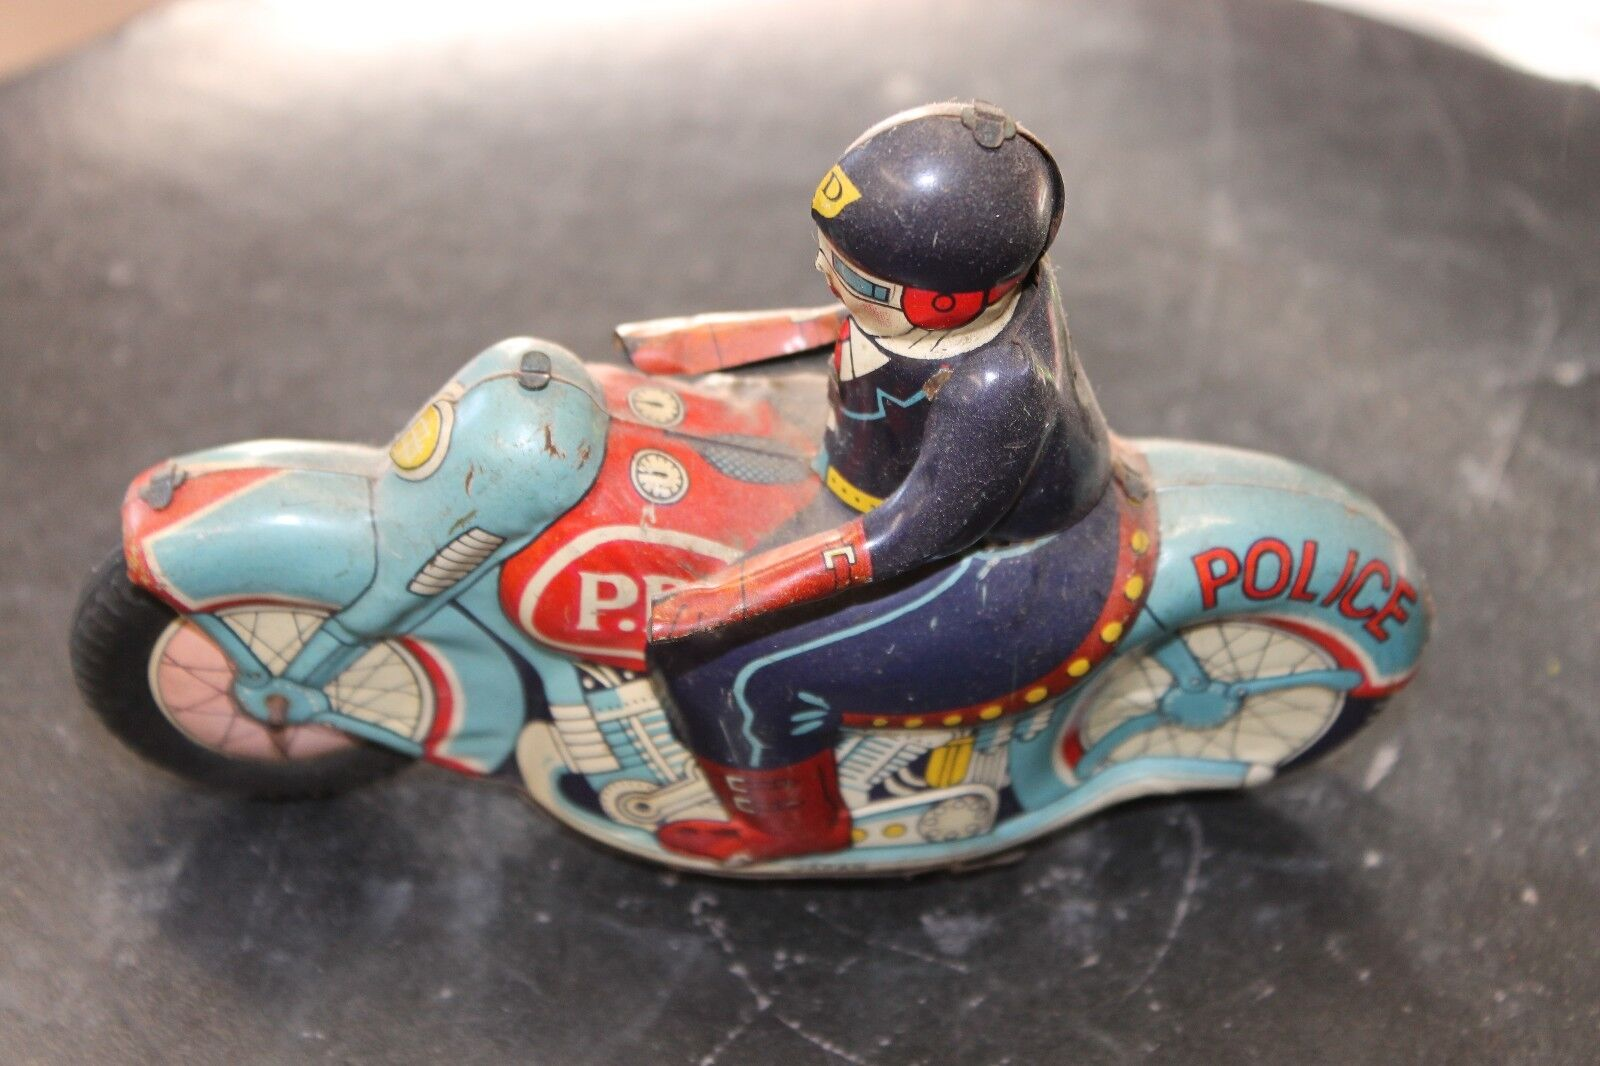 Tin motorcycle Toy ,vintage,51 2 inch P.D. motorcycle,motorcycle toy,antique